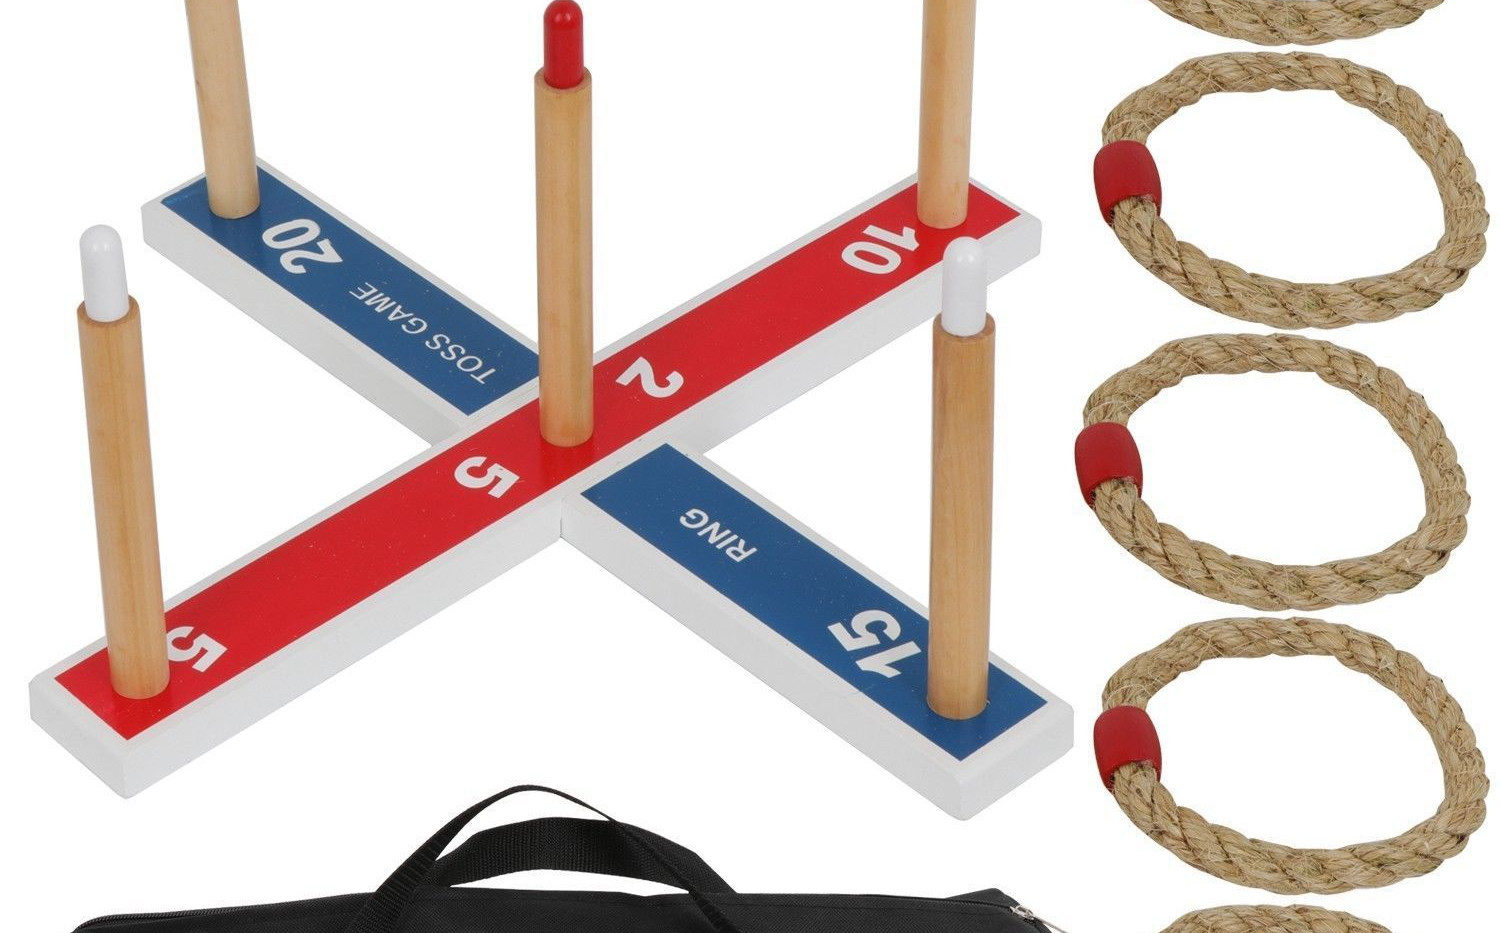 Wooden-Ring-Toss-Game-Set-for-Camping-Ca